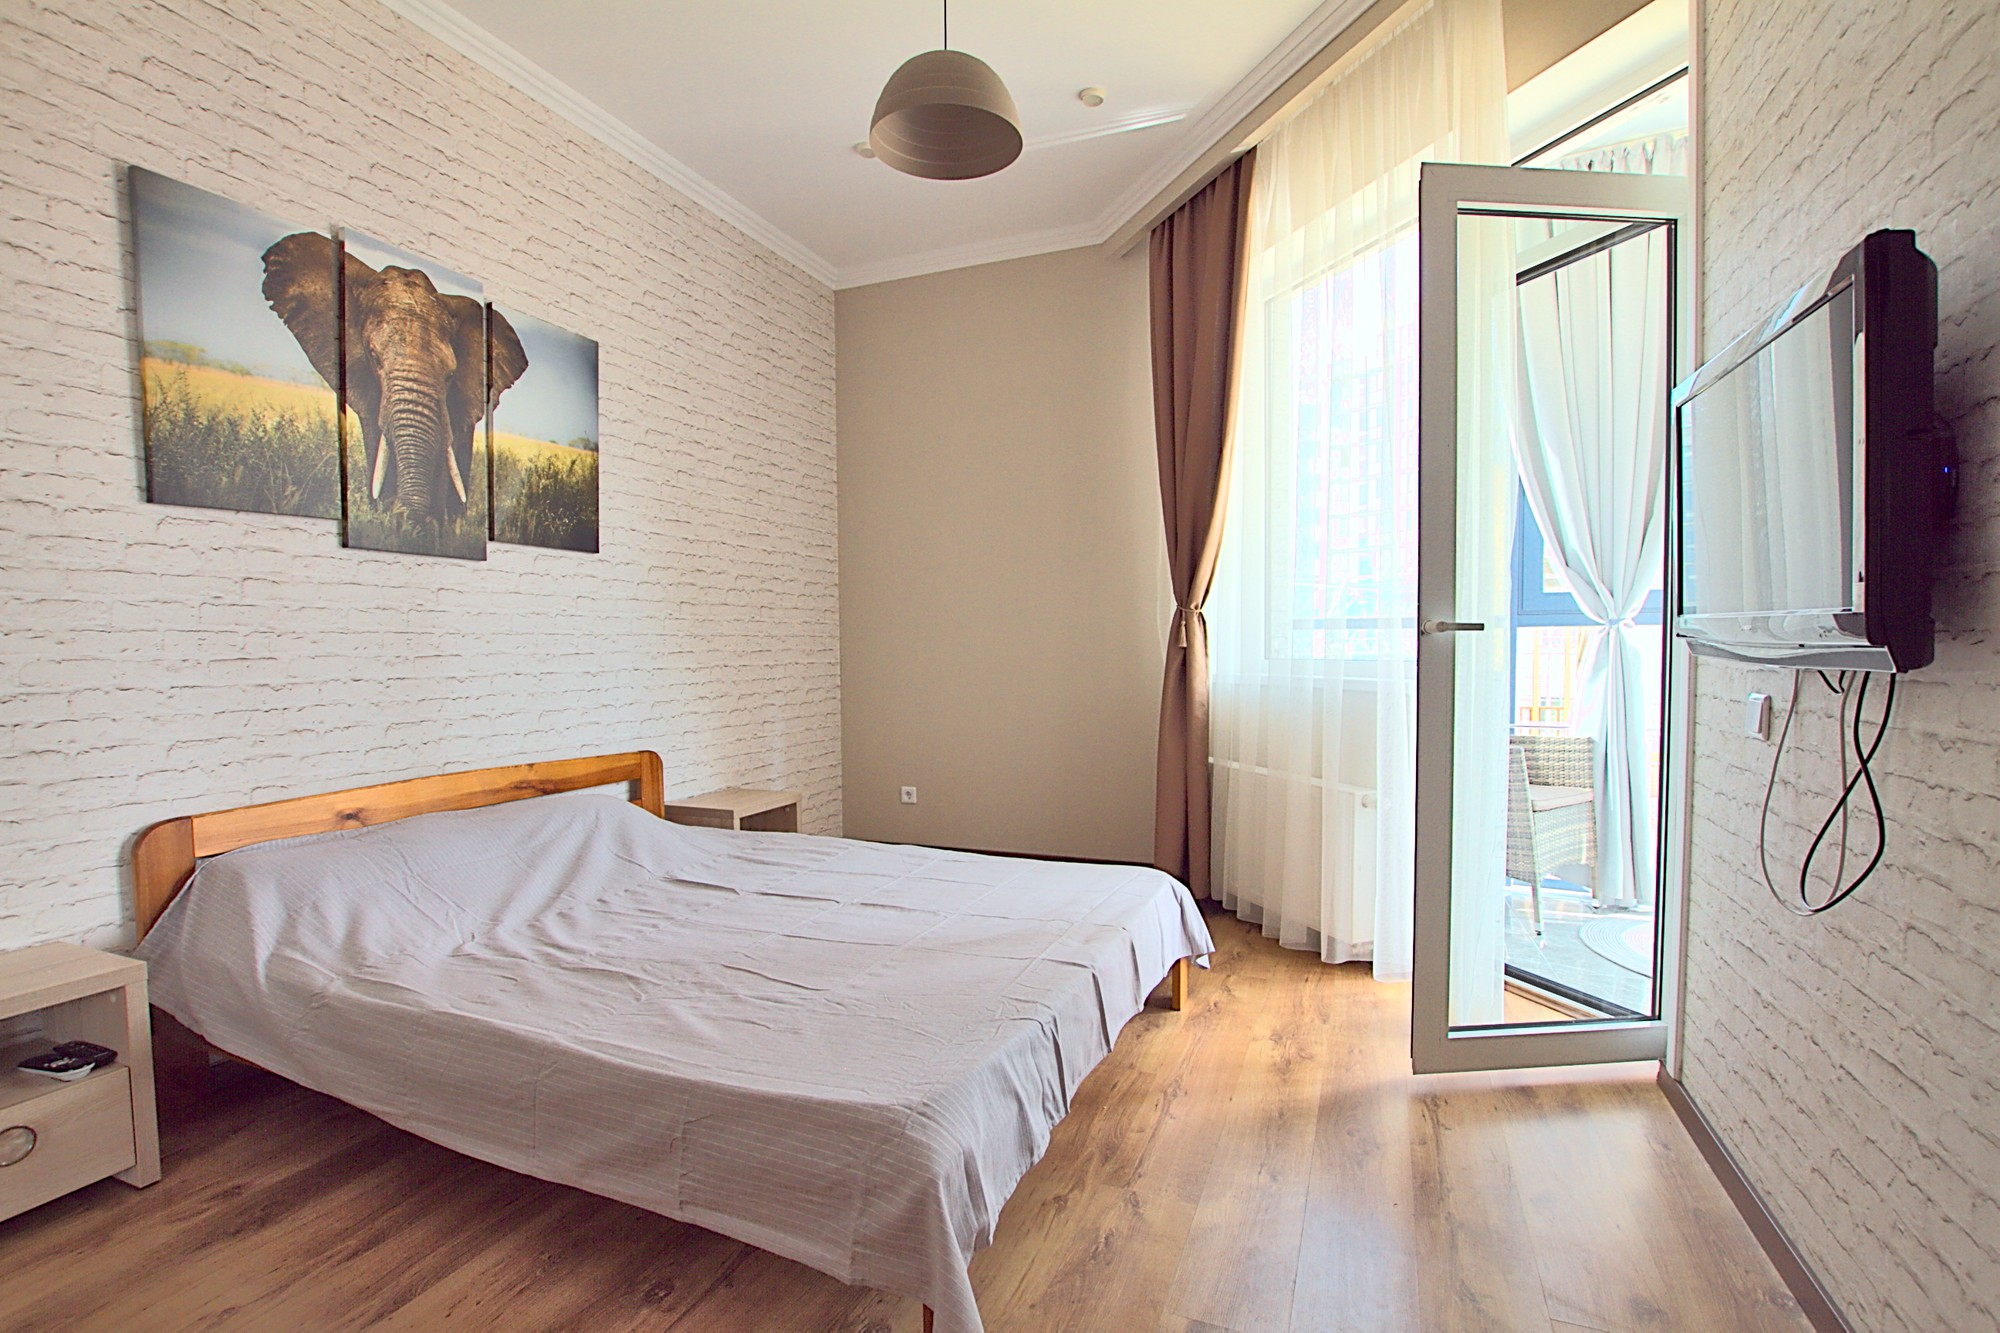 Rent_Apartment_in_Chisinau_at_Colisem_06.jpg